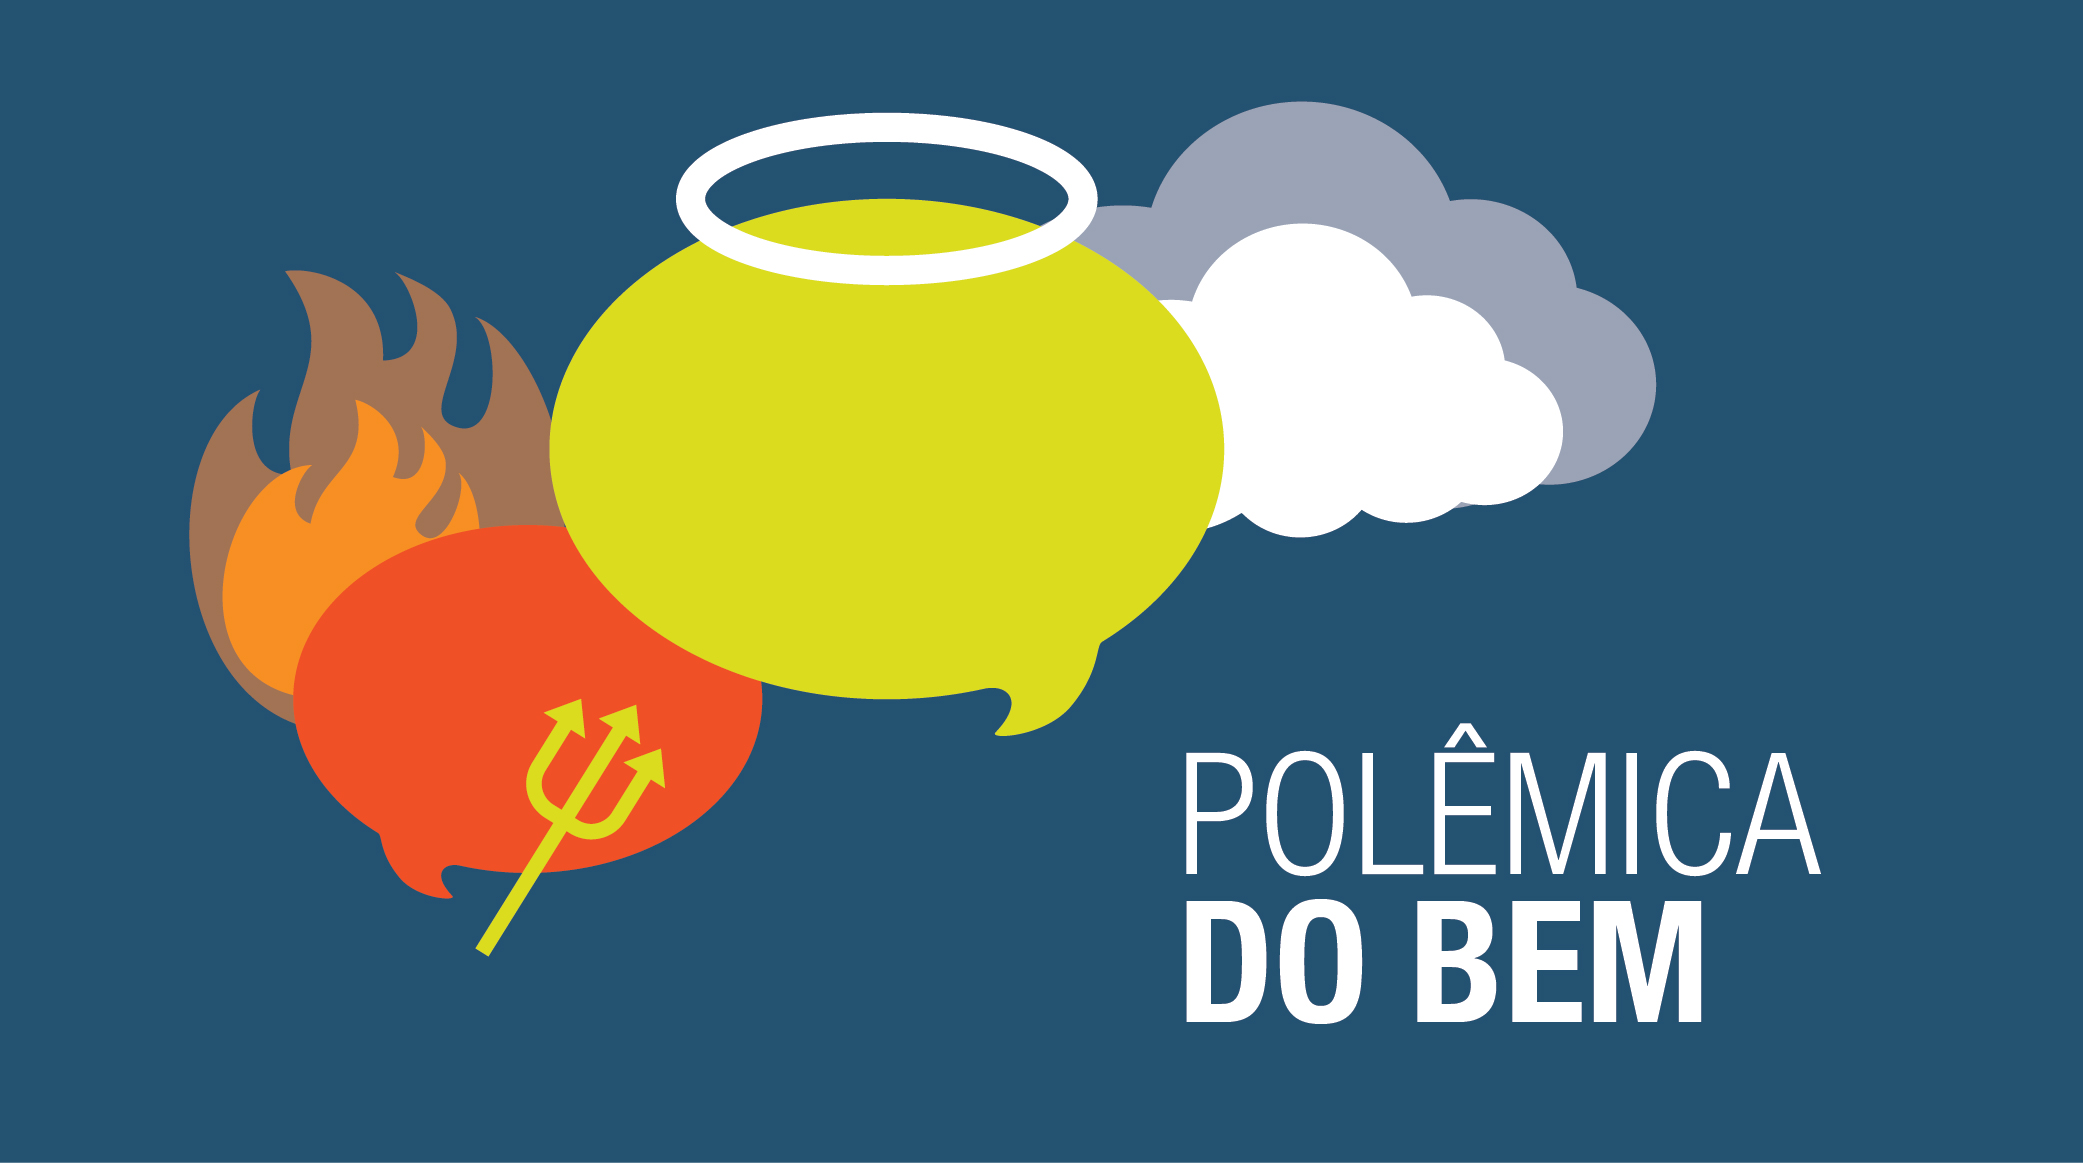 cde_post_blog_polemica_do_bem_01_ey (1)